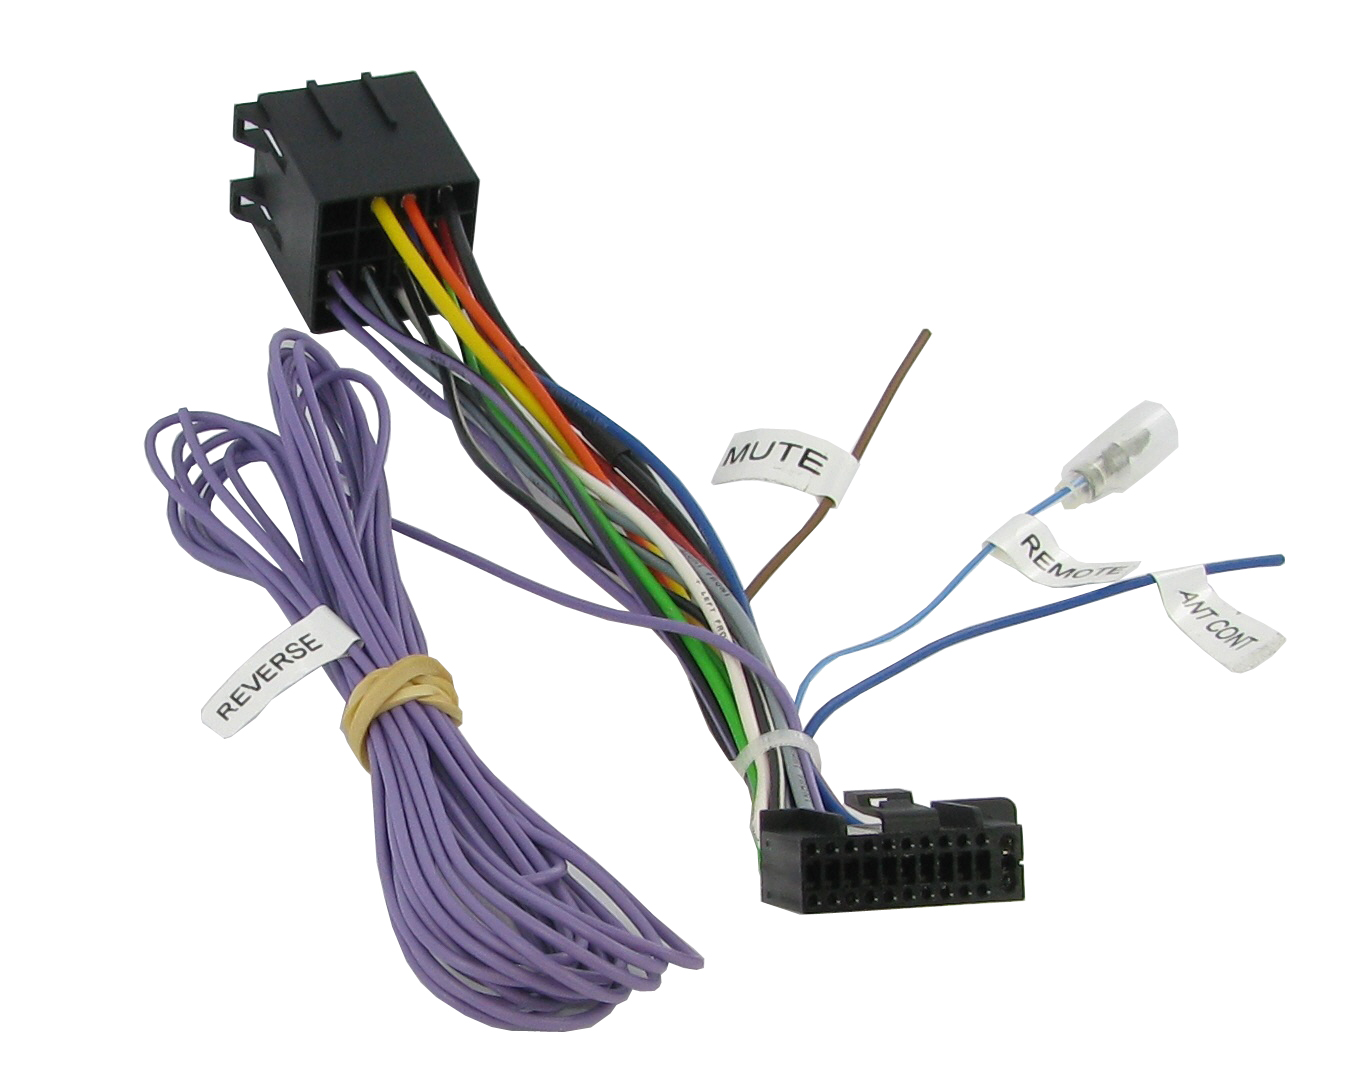 Kenwood Kvt 627dvd Wiring Diagram 33 Images 696 Installer Com Category Products Ct21kw05 S 627 At